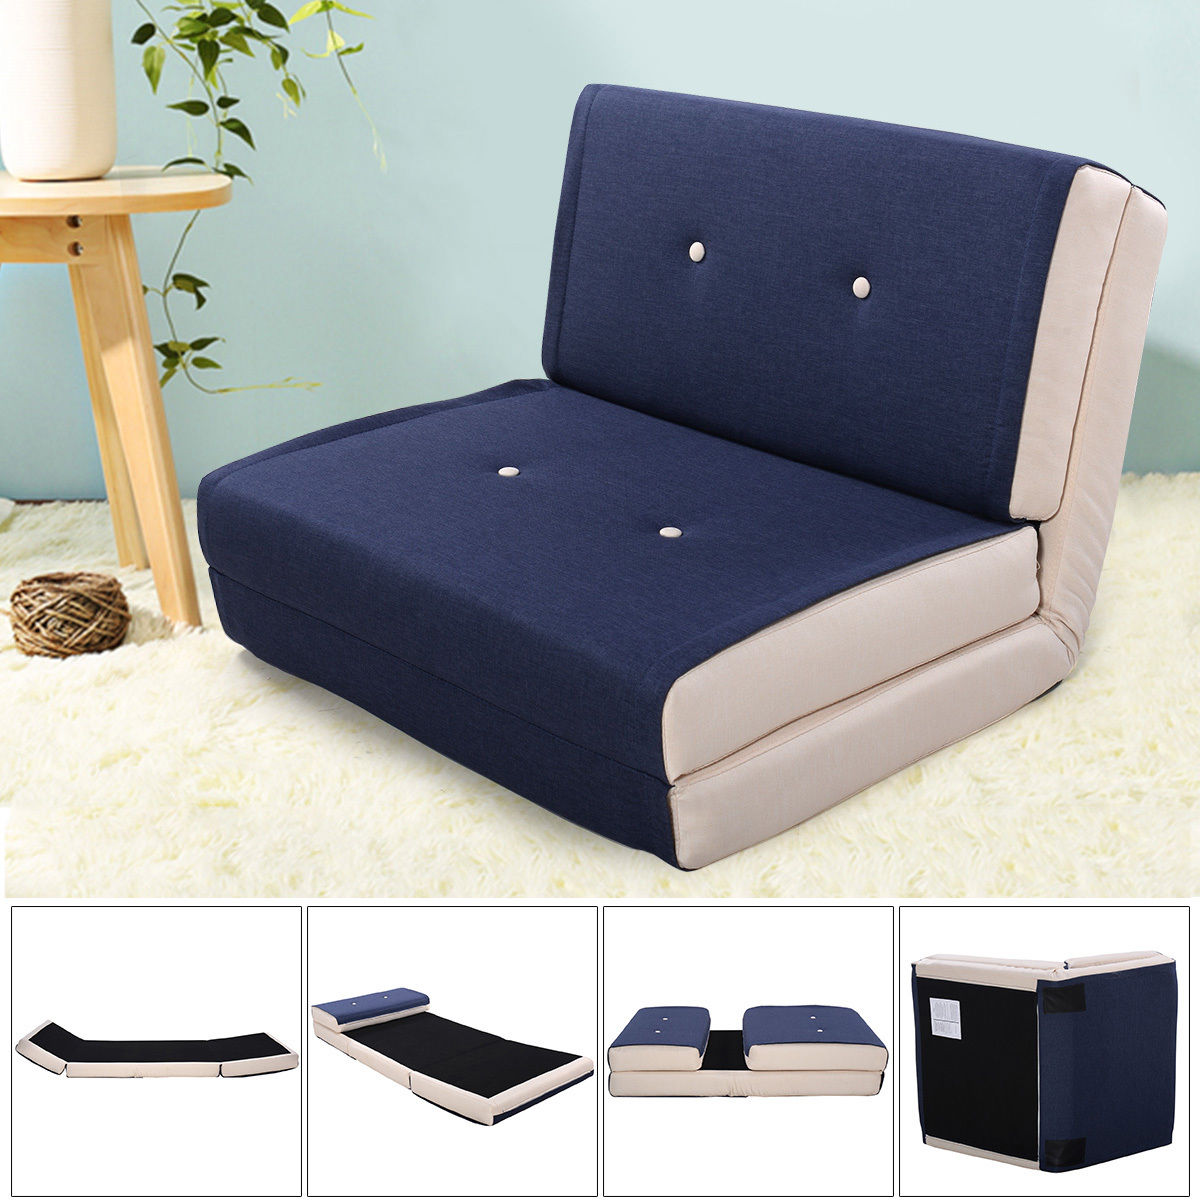 walmart computer chairs madeleine side chair review costway fold down flip out lounger convertible sleeper bed couch game dorm navy - walmart.com